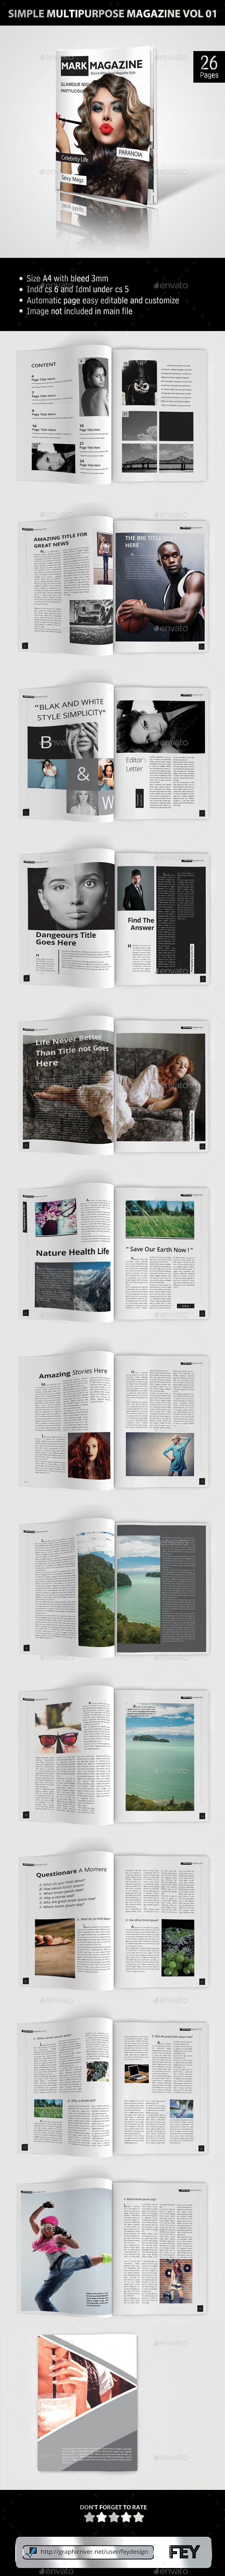 Simple Multipurpose Magazine Vol.01 - Magazines Print Templates